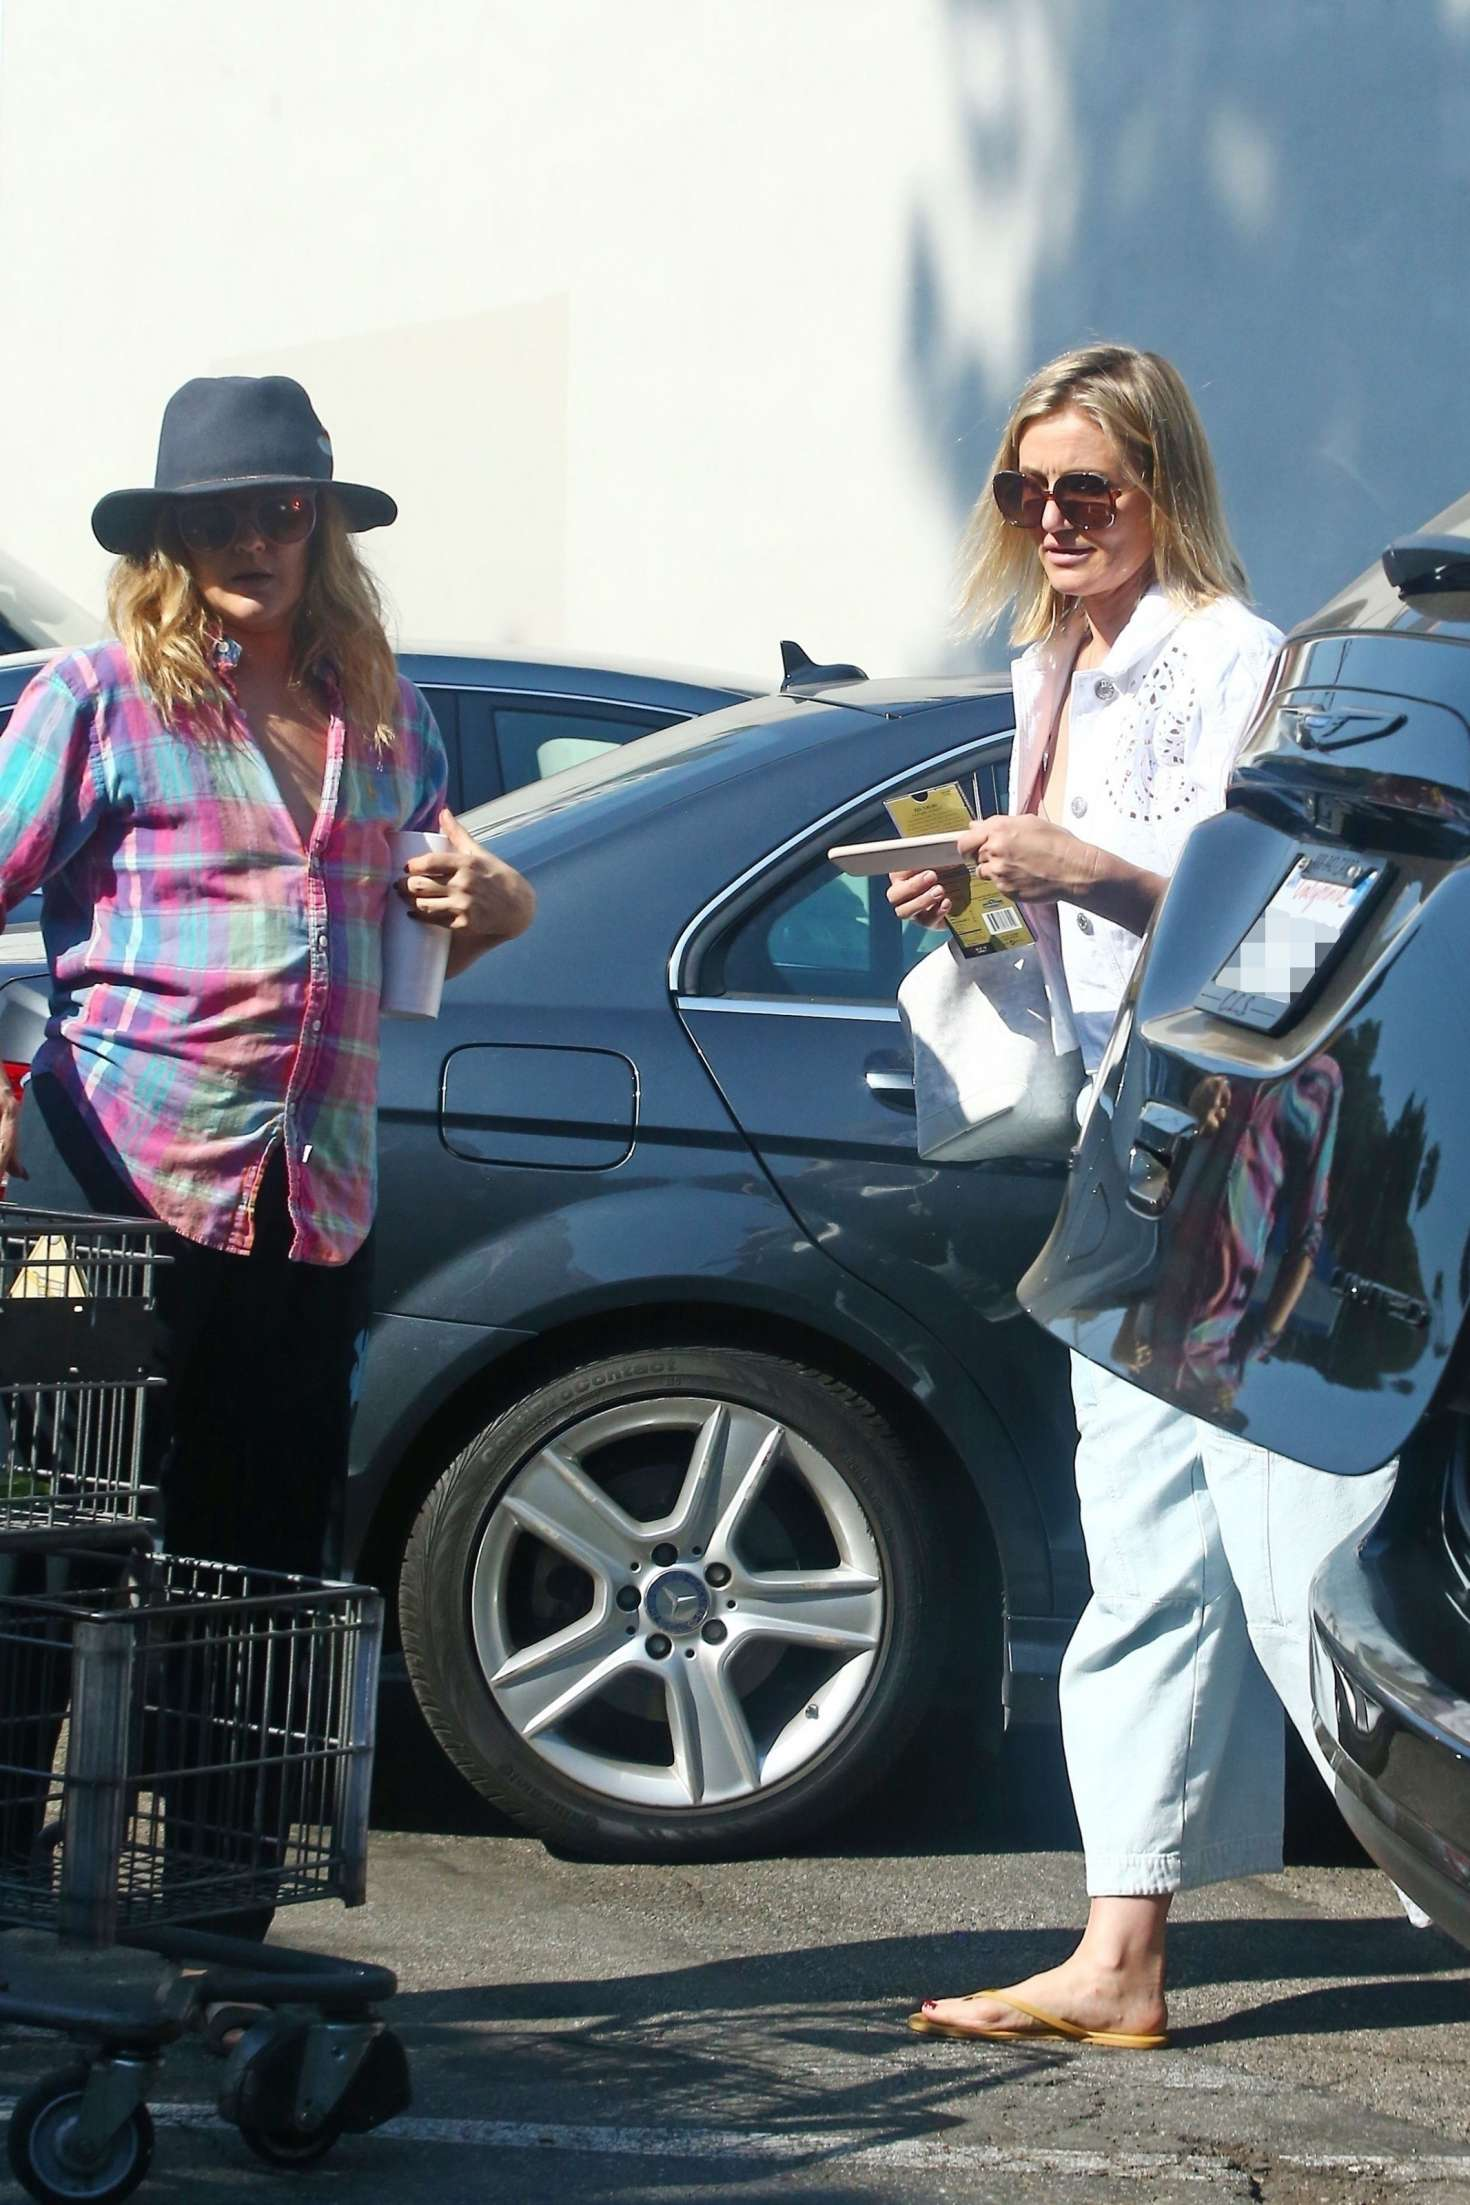 Drew Barrymore and Cameron Diaz - Shopping at Bristol Farms in Hollywood